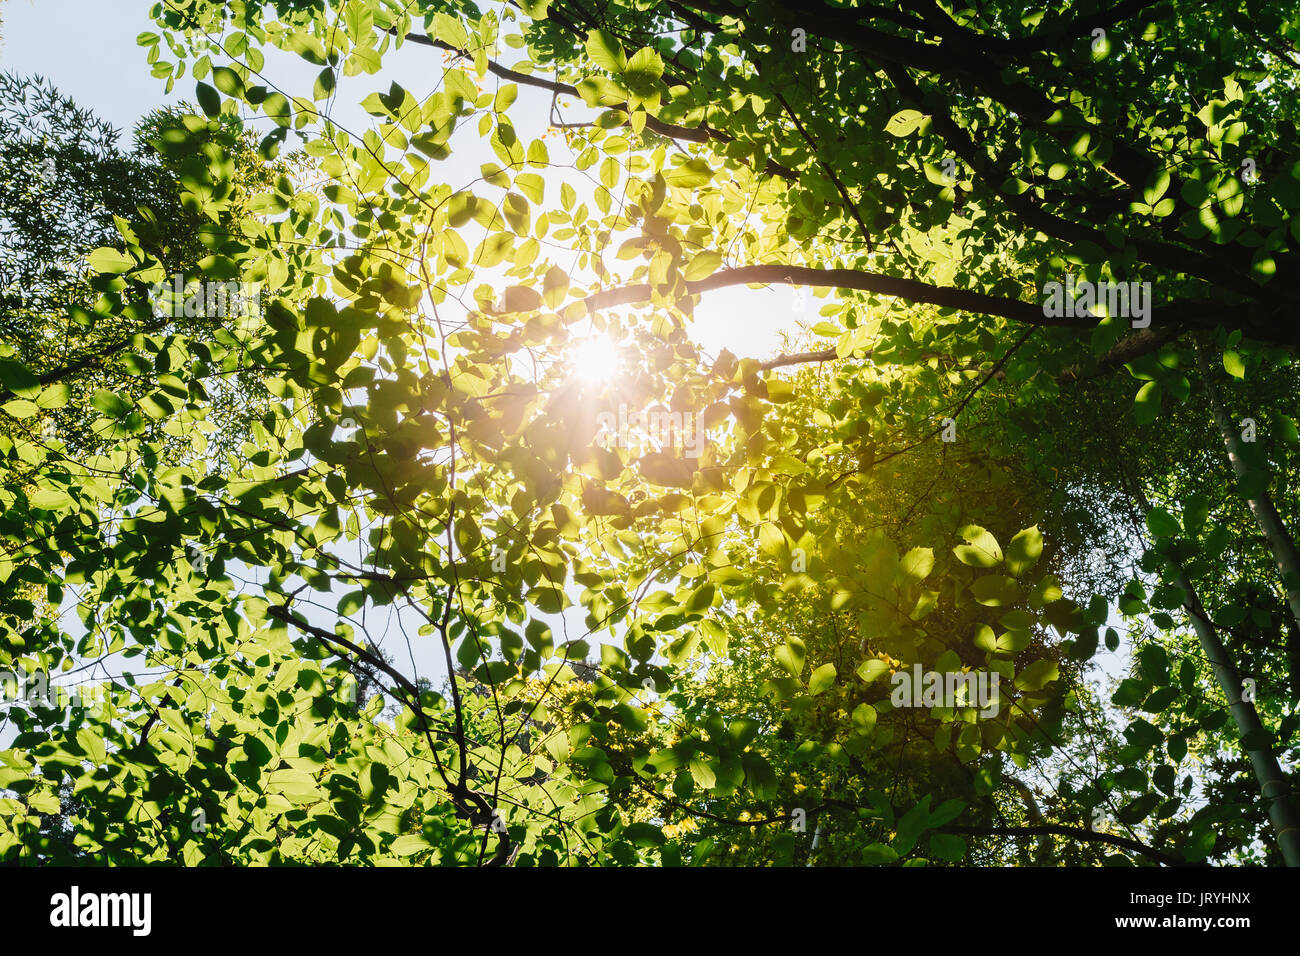 Sun Shining Through Canopy Of Tall Trees. Sunlight In Tropical Forest Summer Nature. Upper Branches Of Different Deciduous Trees Summer Background & Sun Shining Through Canopy Of Tall Trees. Sunlight In Tropical ...